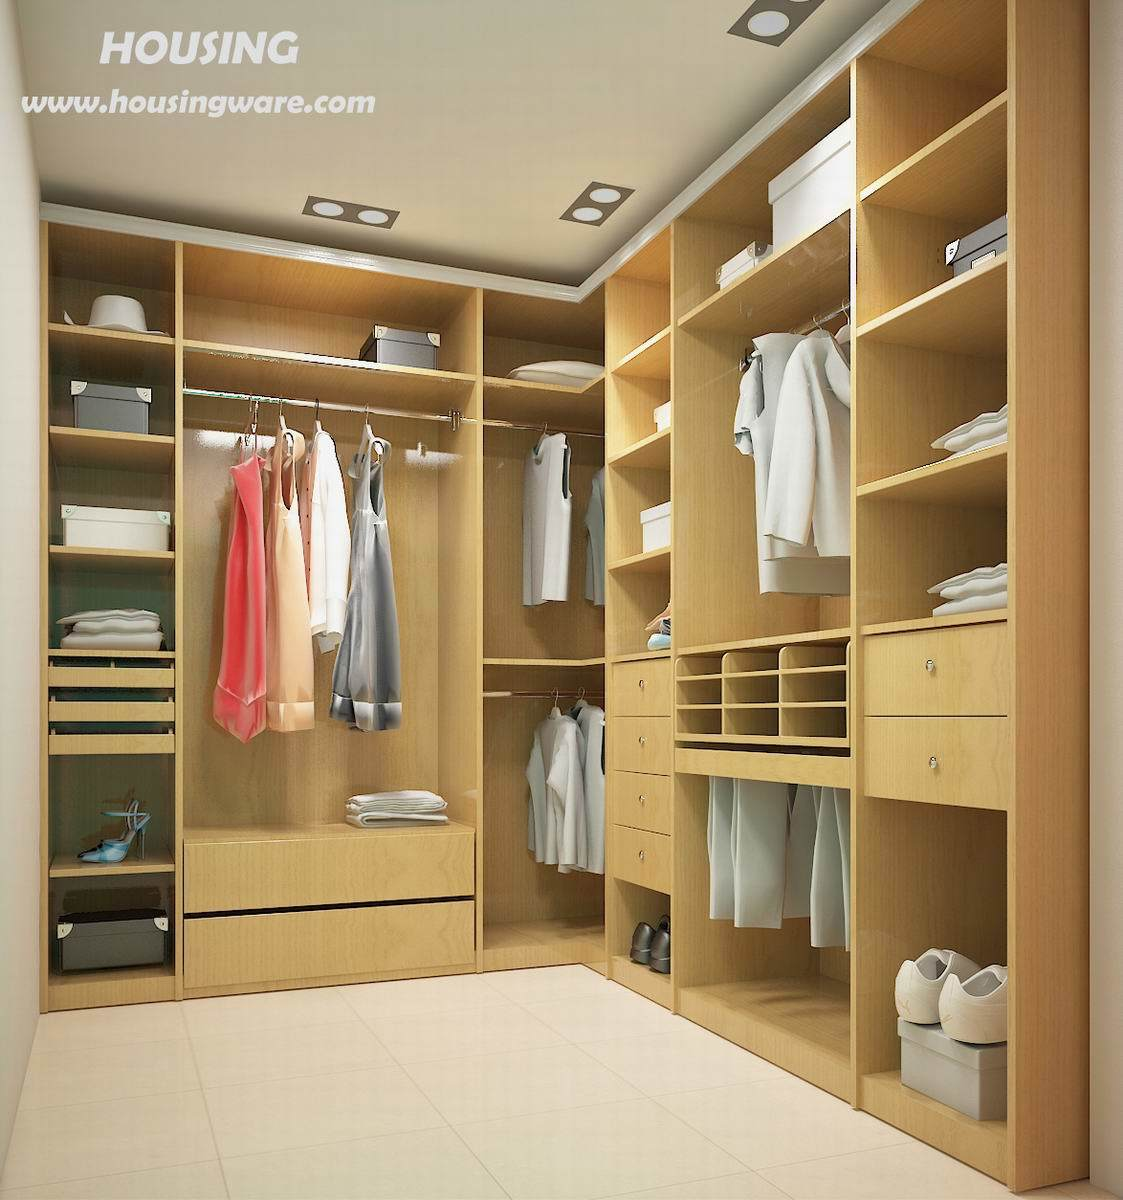 1000+ images about walk in closet on Pinterest